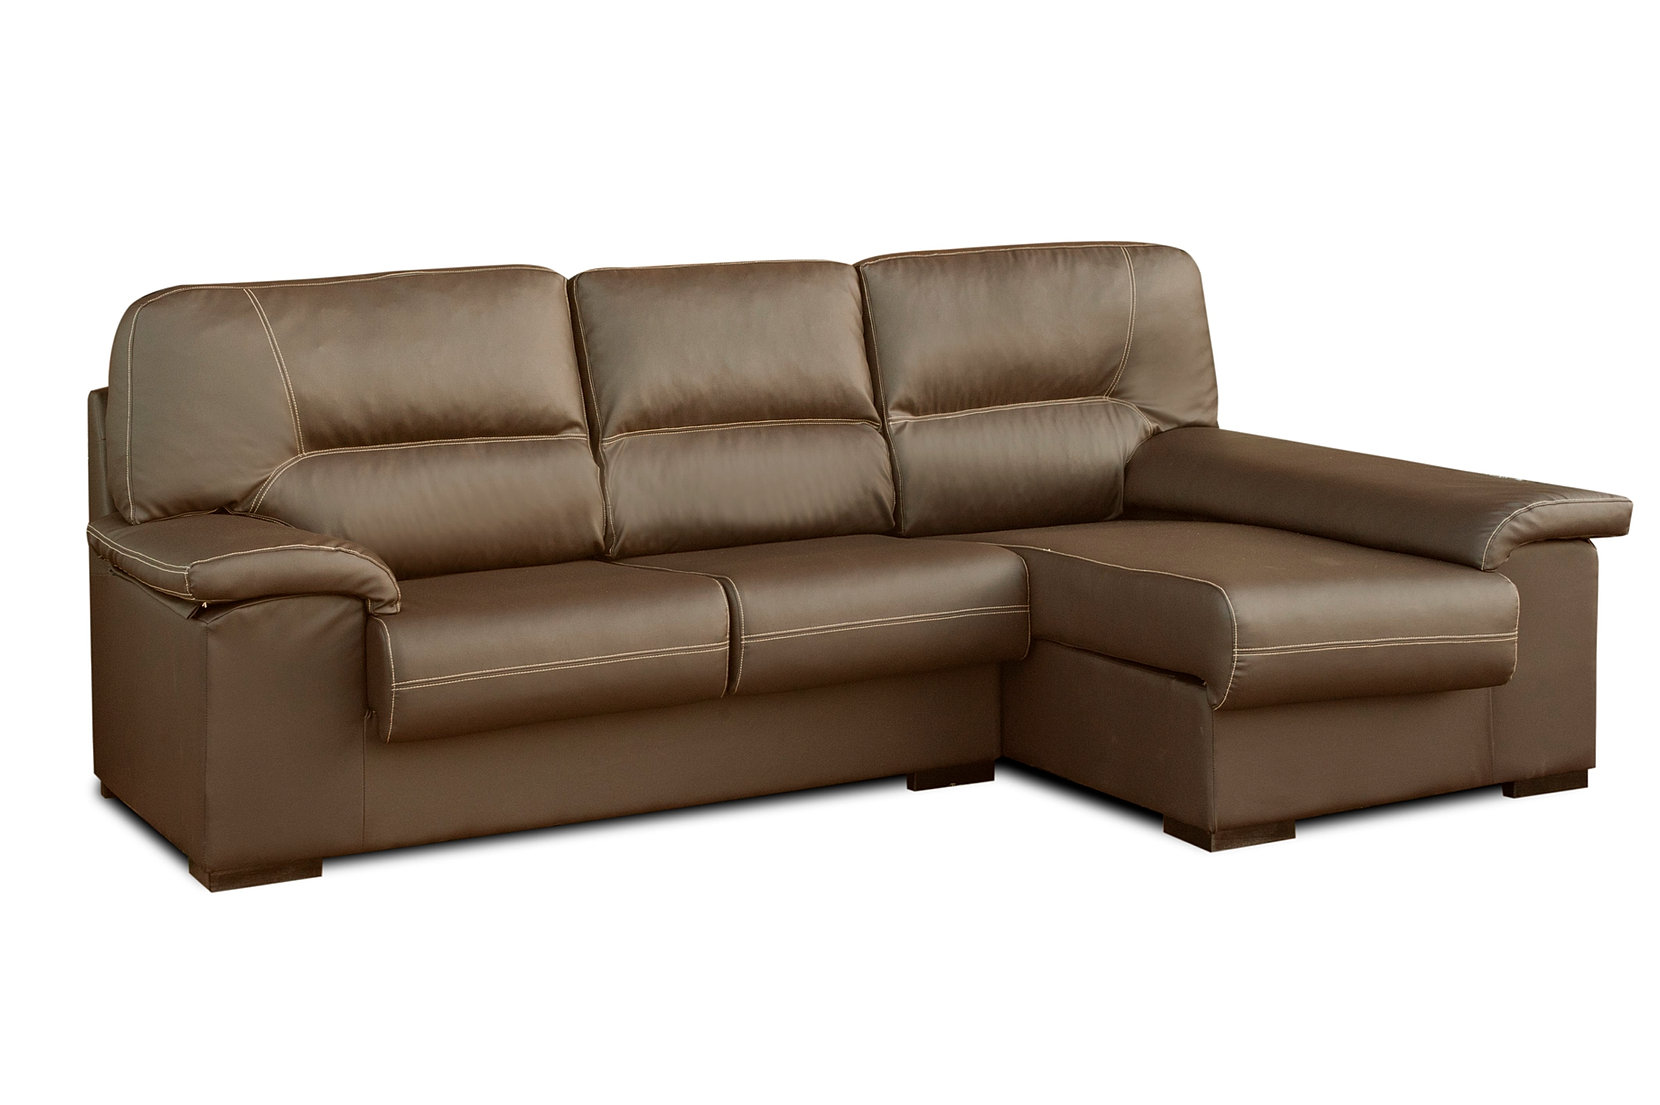 Liquisof s sof s chaiselongues baratos en m laga for Liquidacion sofas